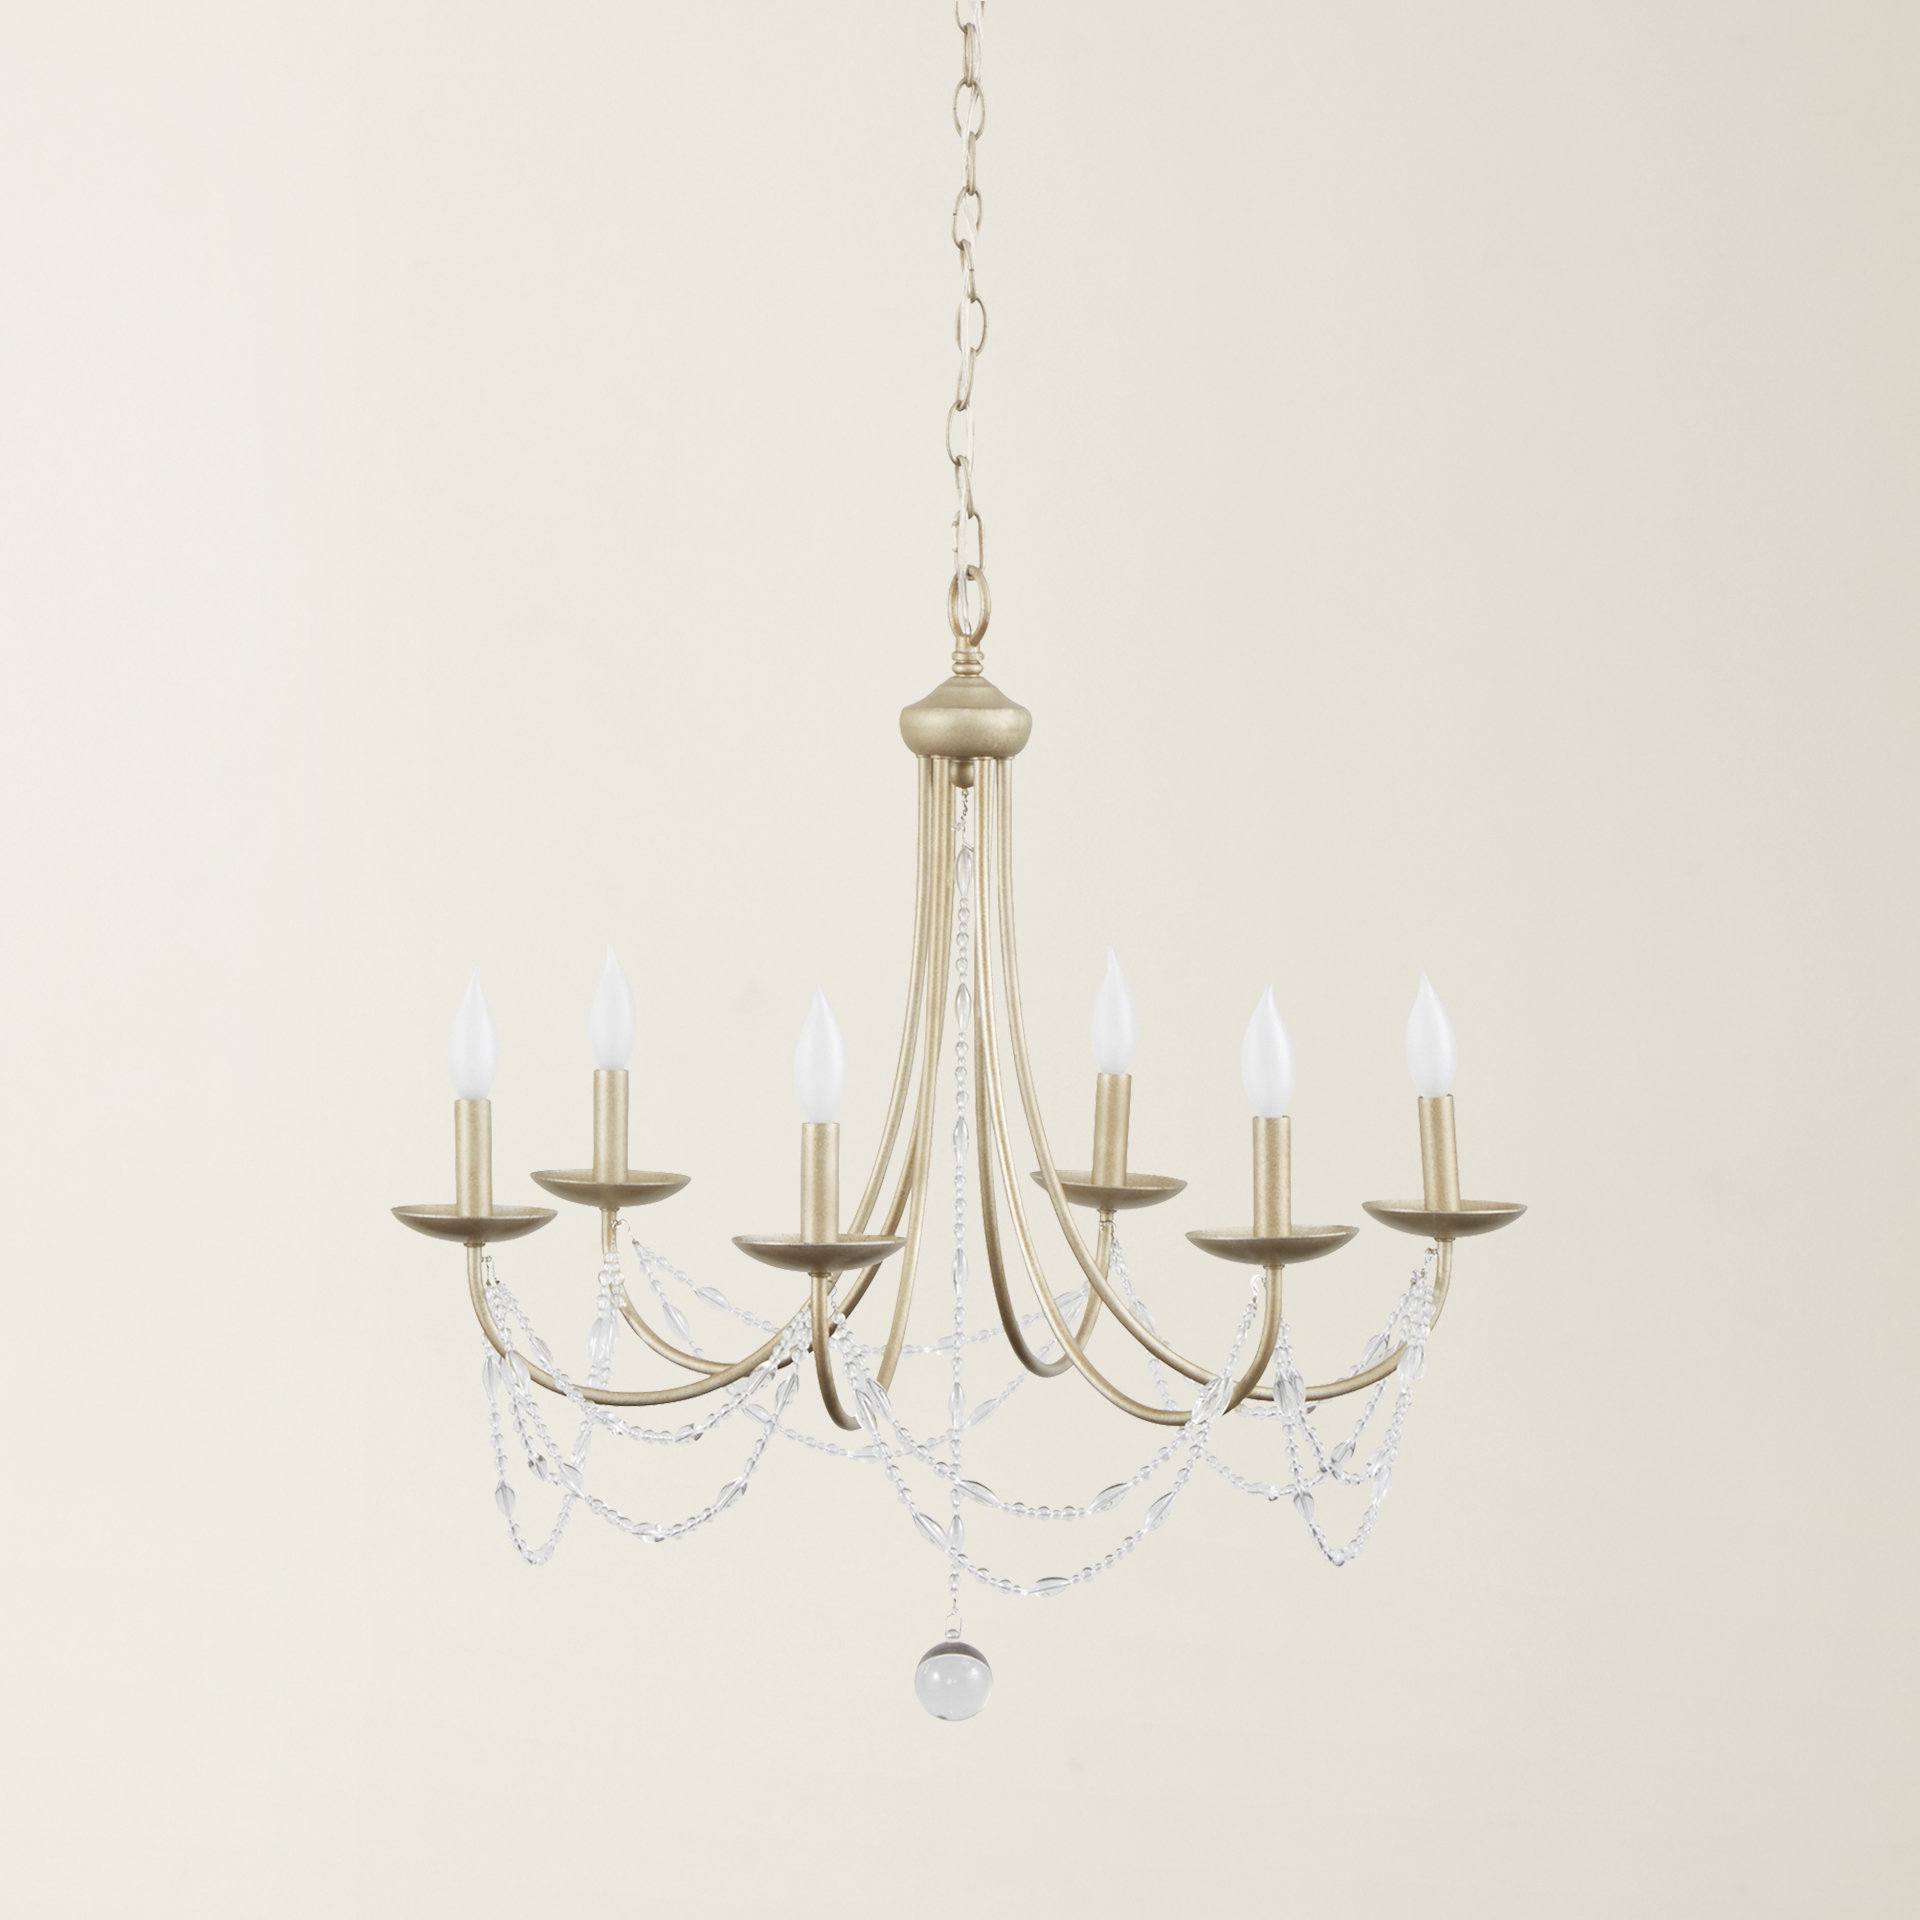 Nantucket 6 Light Candle Style Chandelier For Most Up To Date Shaylee 8 Light Candle Style Chandeliers (Gallery 19 of 20)